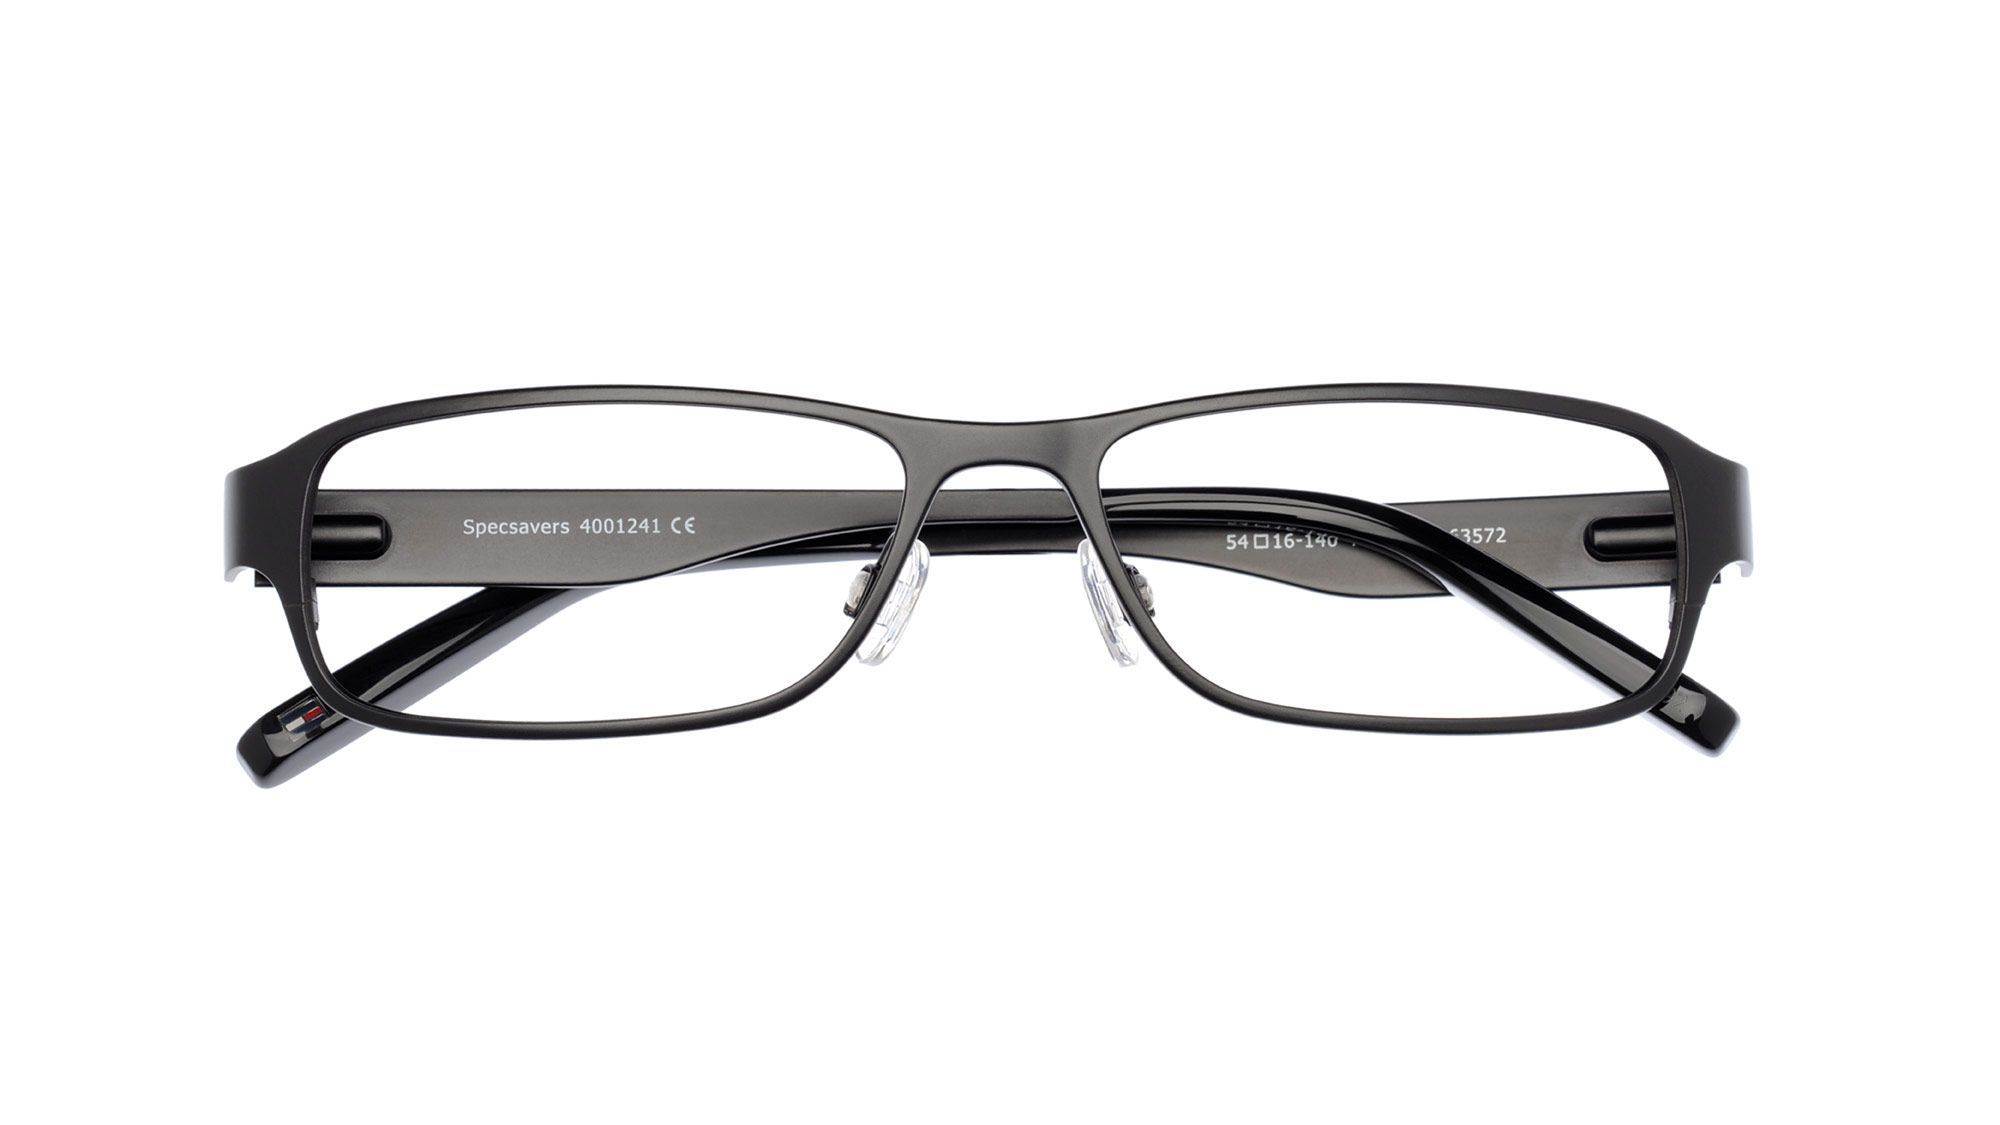 TH 51 Glasses by Tommy Hilfiger Specsavers UK Glasses